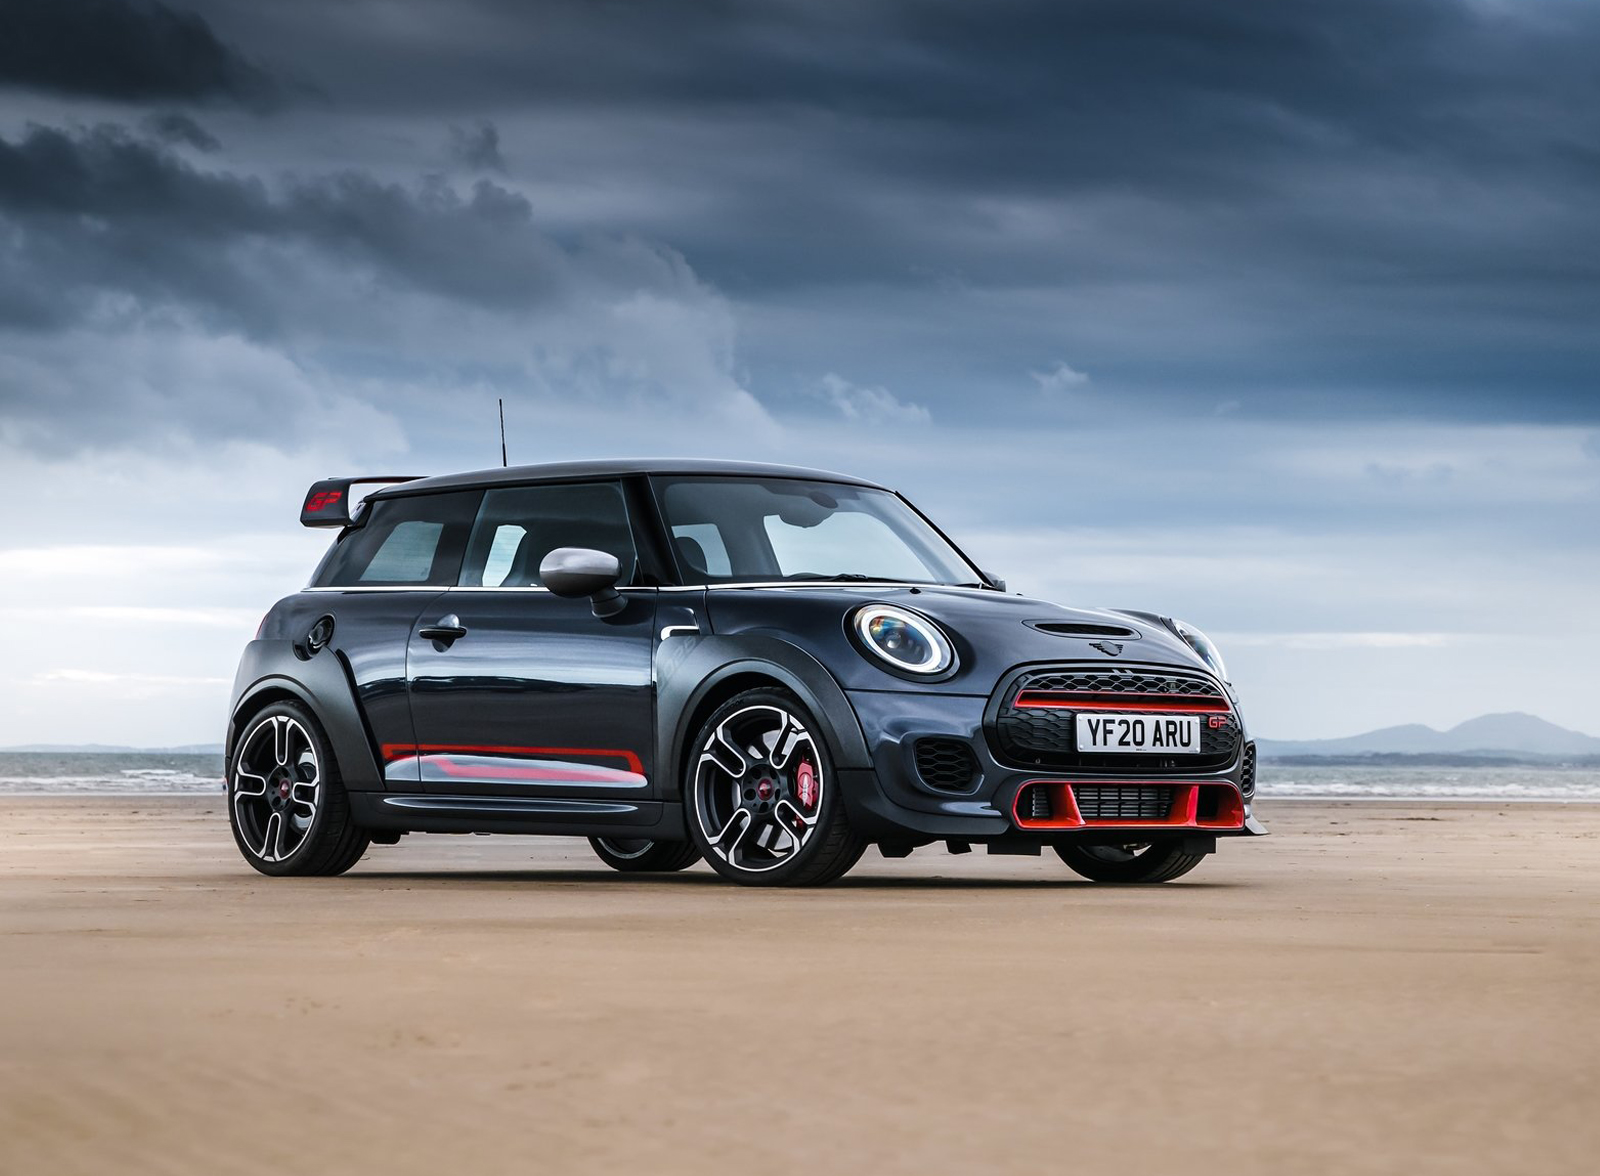 grey car MINI John Cooper with red highlights standing on cloudy beach